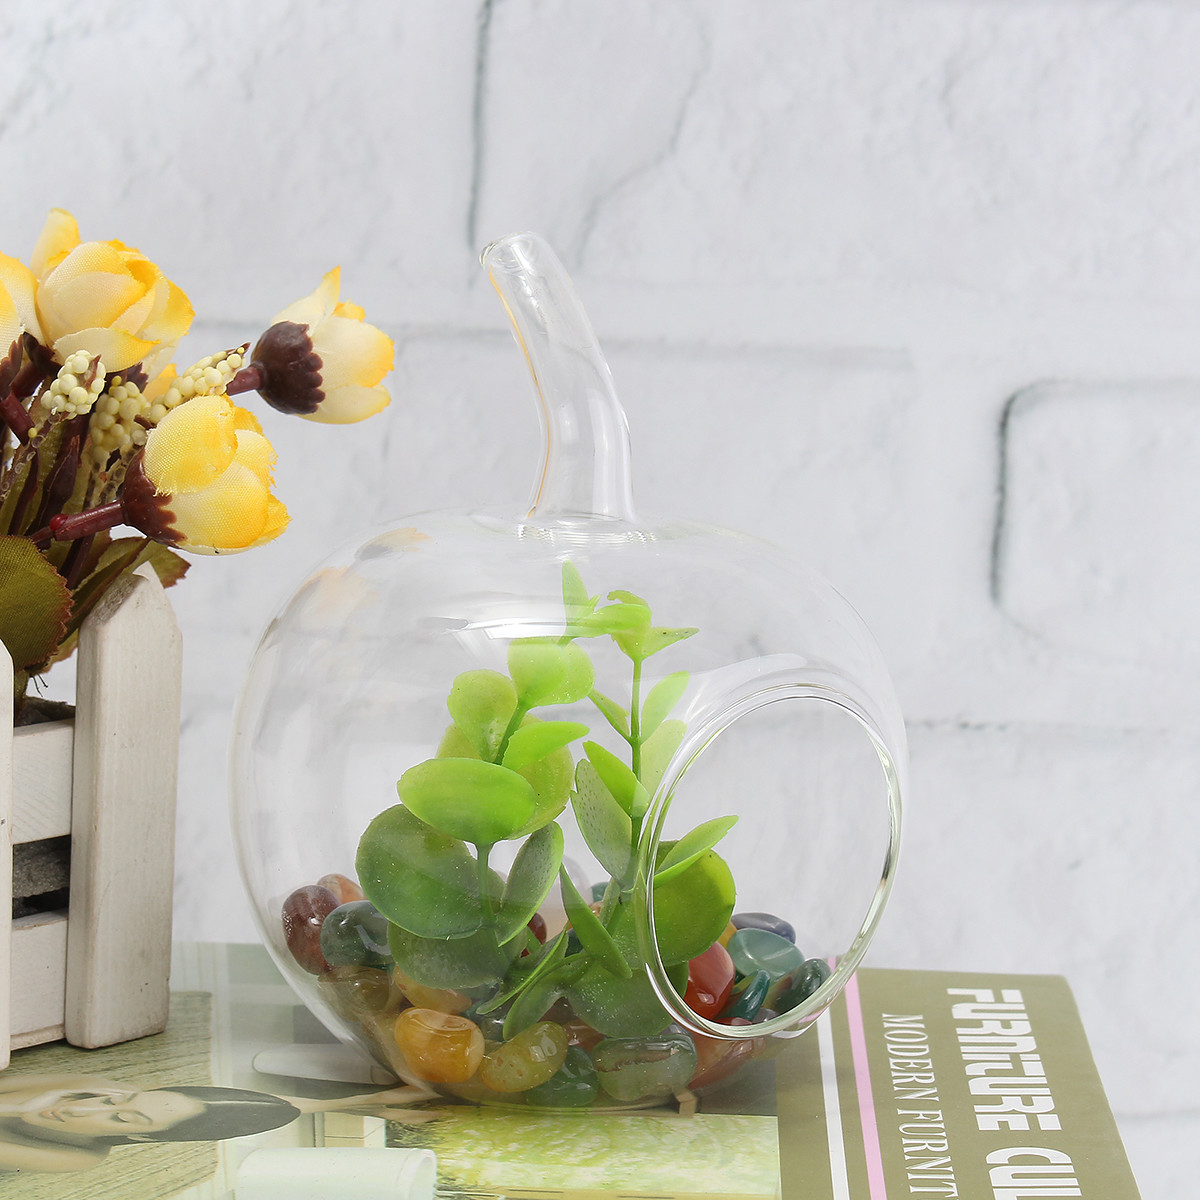 vw flower vase of plants crystal glass flower vase terrarium container micro intended for 1 x crystal glass flower vase